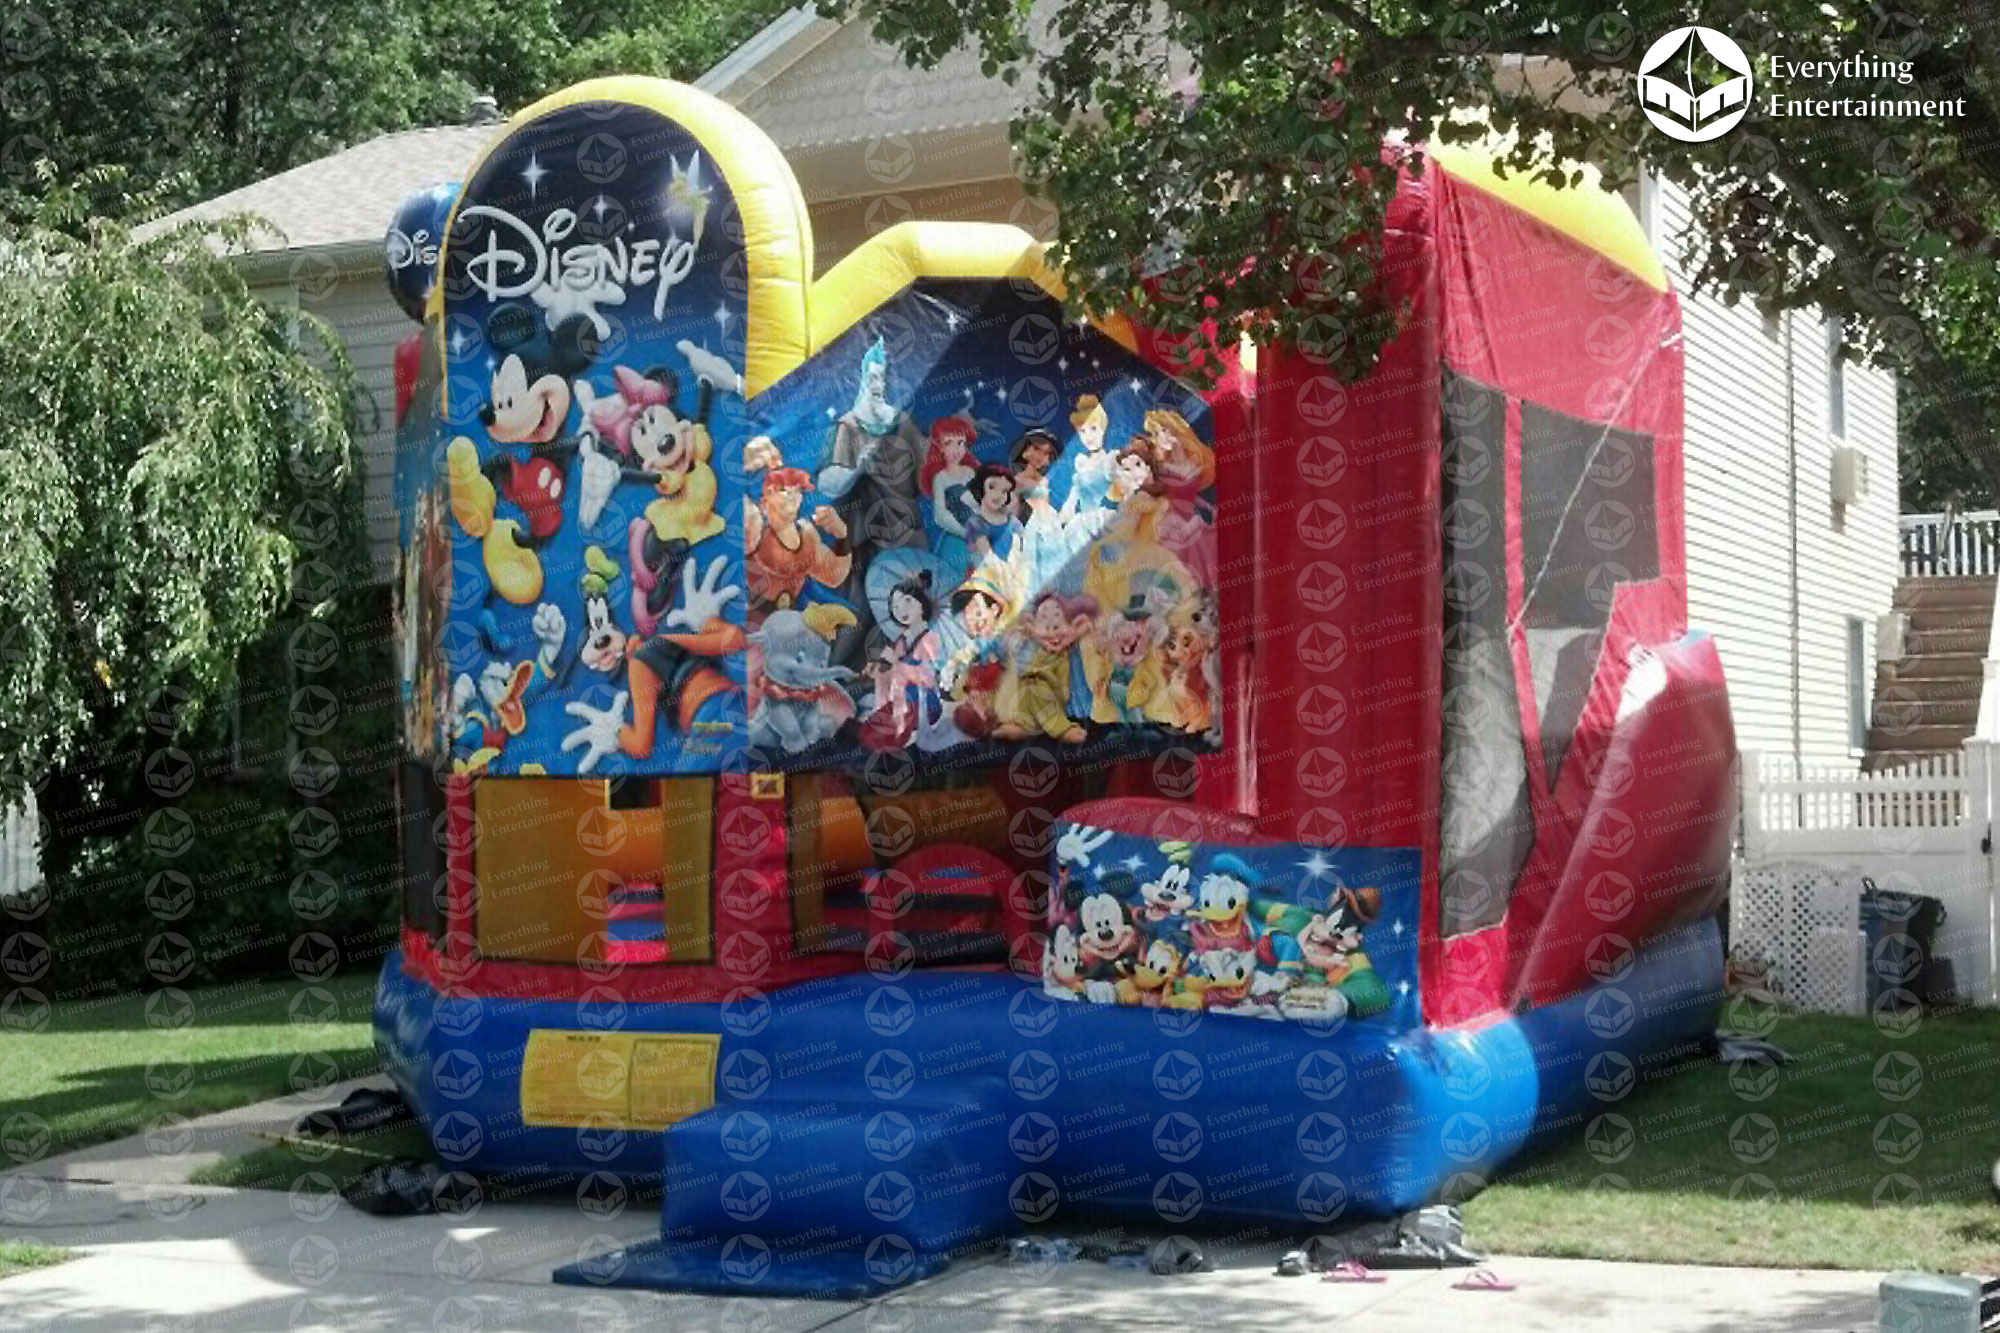 Amazing Ideas Of Top Backyard Inflatables About Backyard Inflatables - Avaz in Lovely Backyard Inflatables